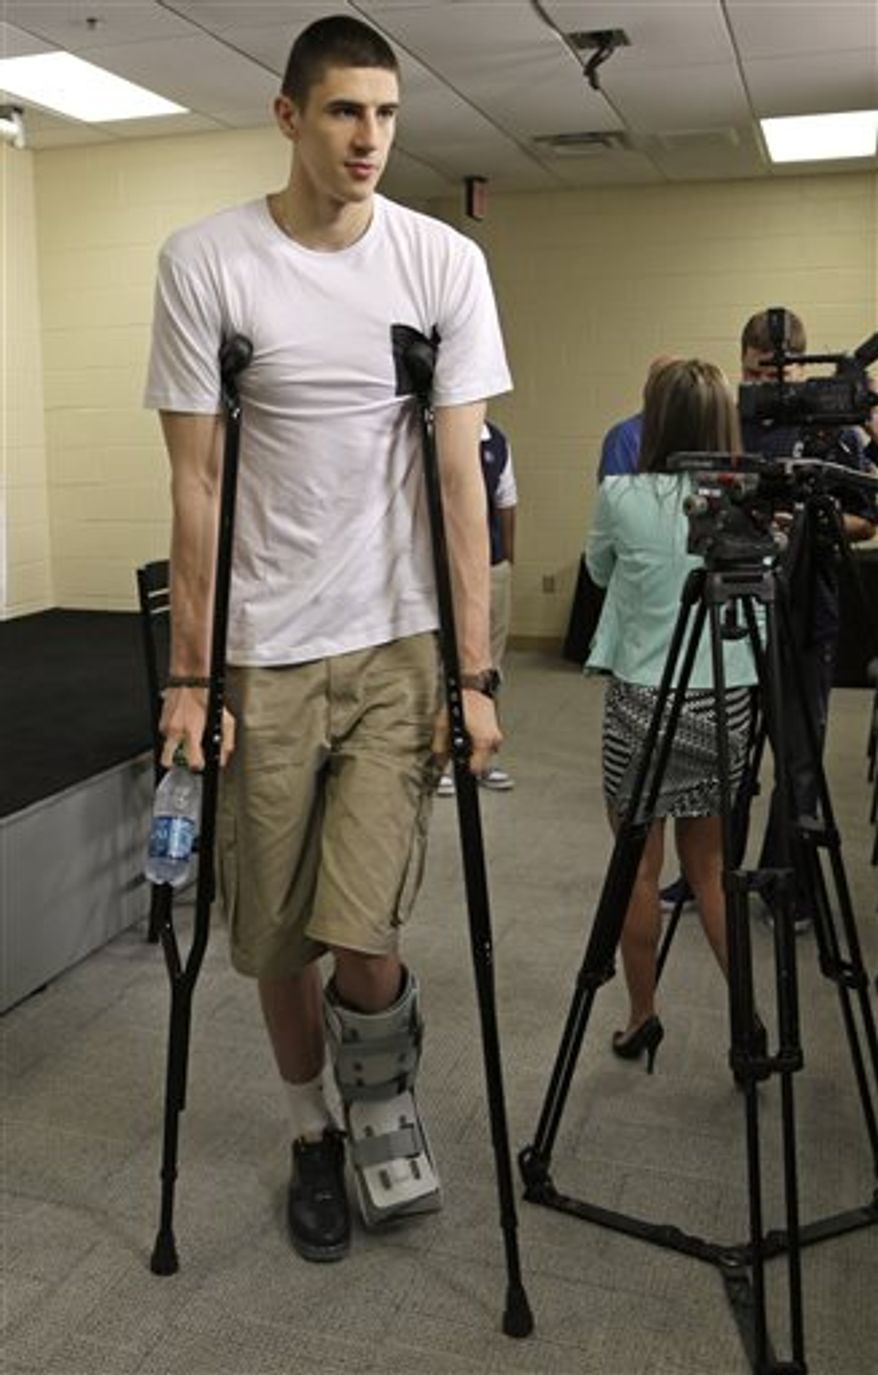 Maryland's Alex Len leaves a media interview on crutches during a pre-draft visit to the NBA Charlotte Bobcats basketball team in Charlotte, N.C., Tuesday, June 18, 2013. The NBA Draft begins June 27. (AP Photo/Chuck Burton)